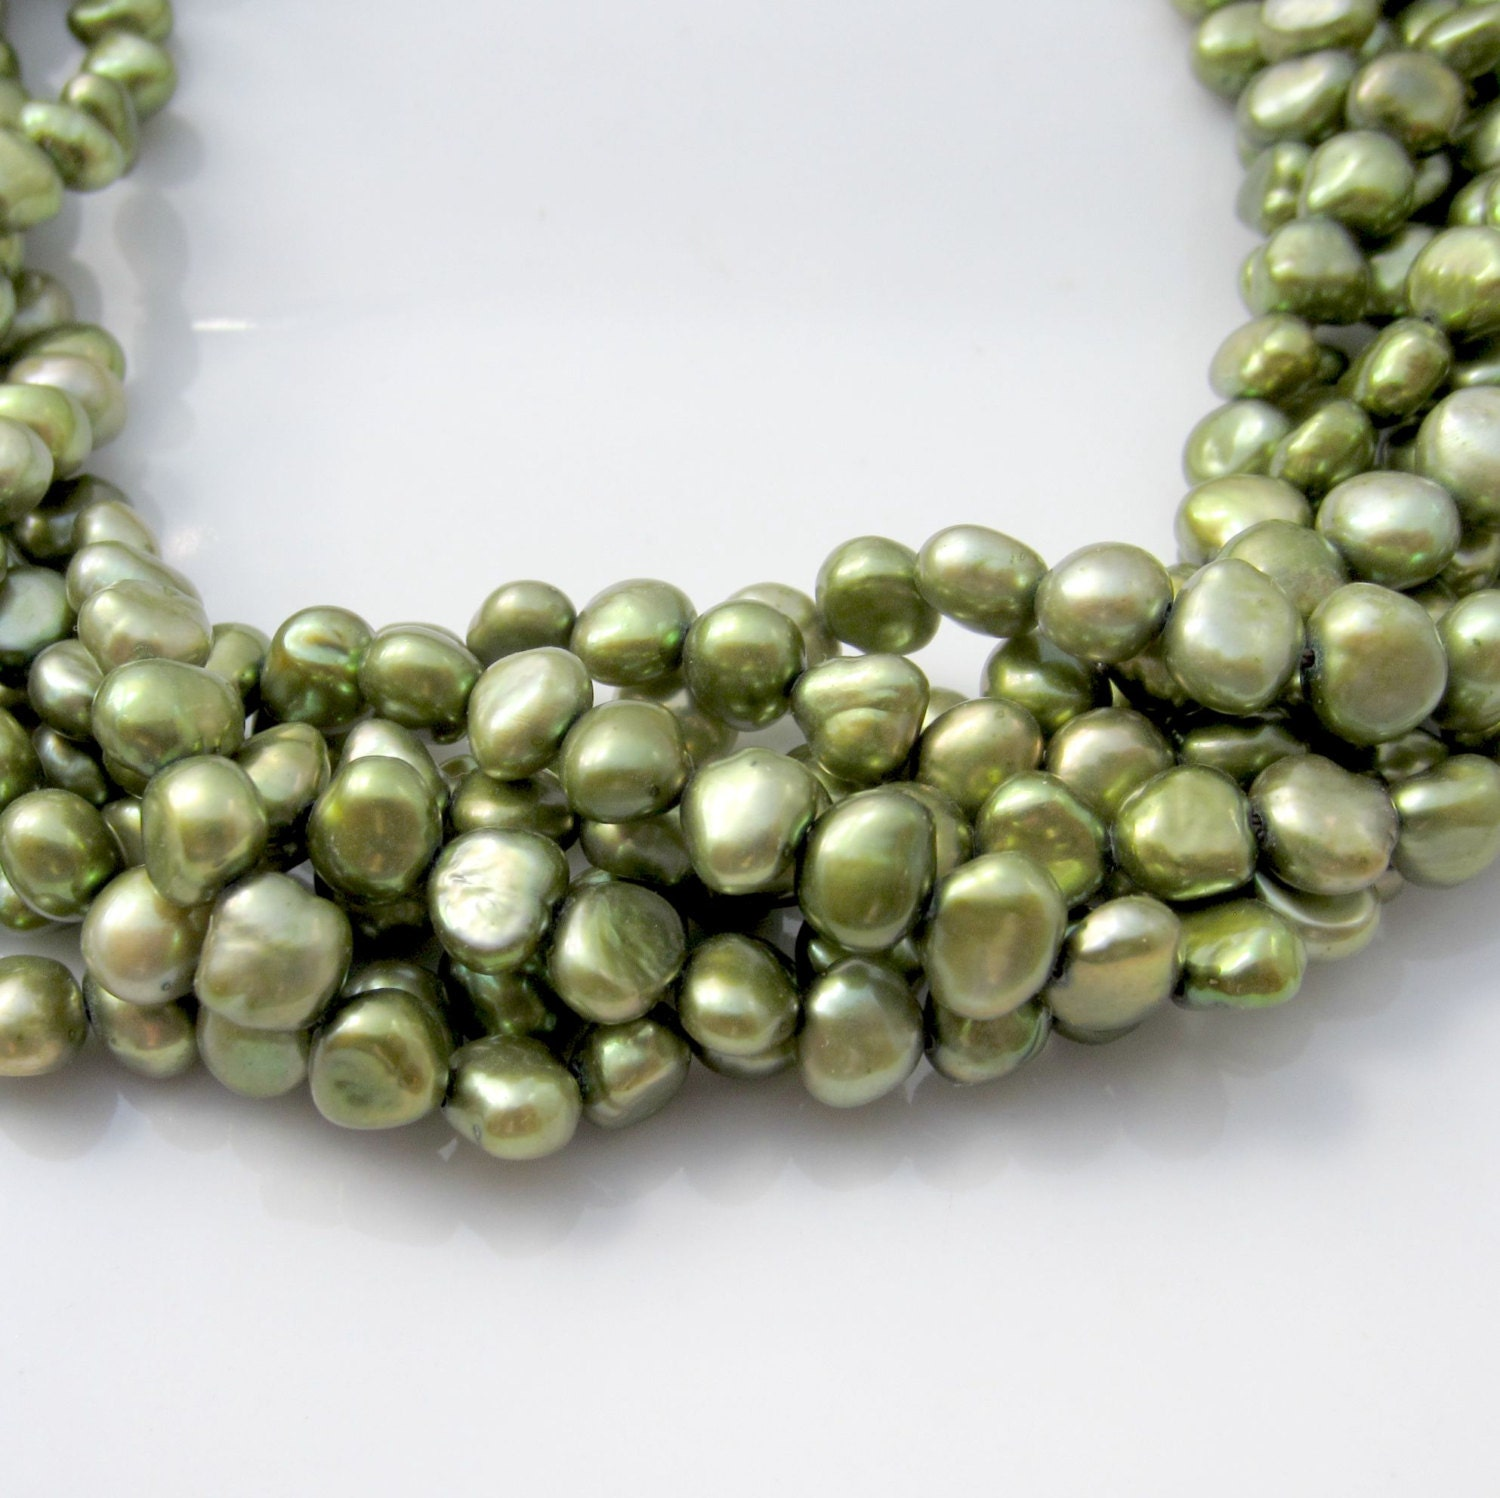 sizes drop green copy down mid available see glass light of products olive for pearls mhai